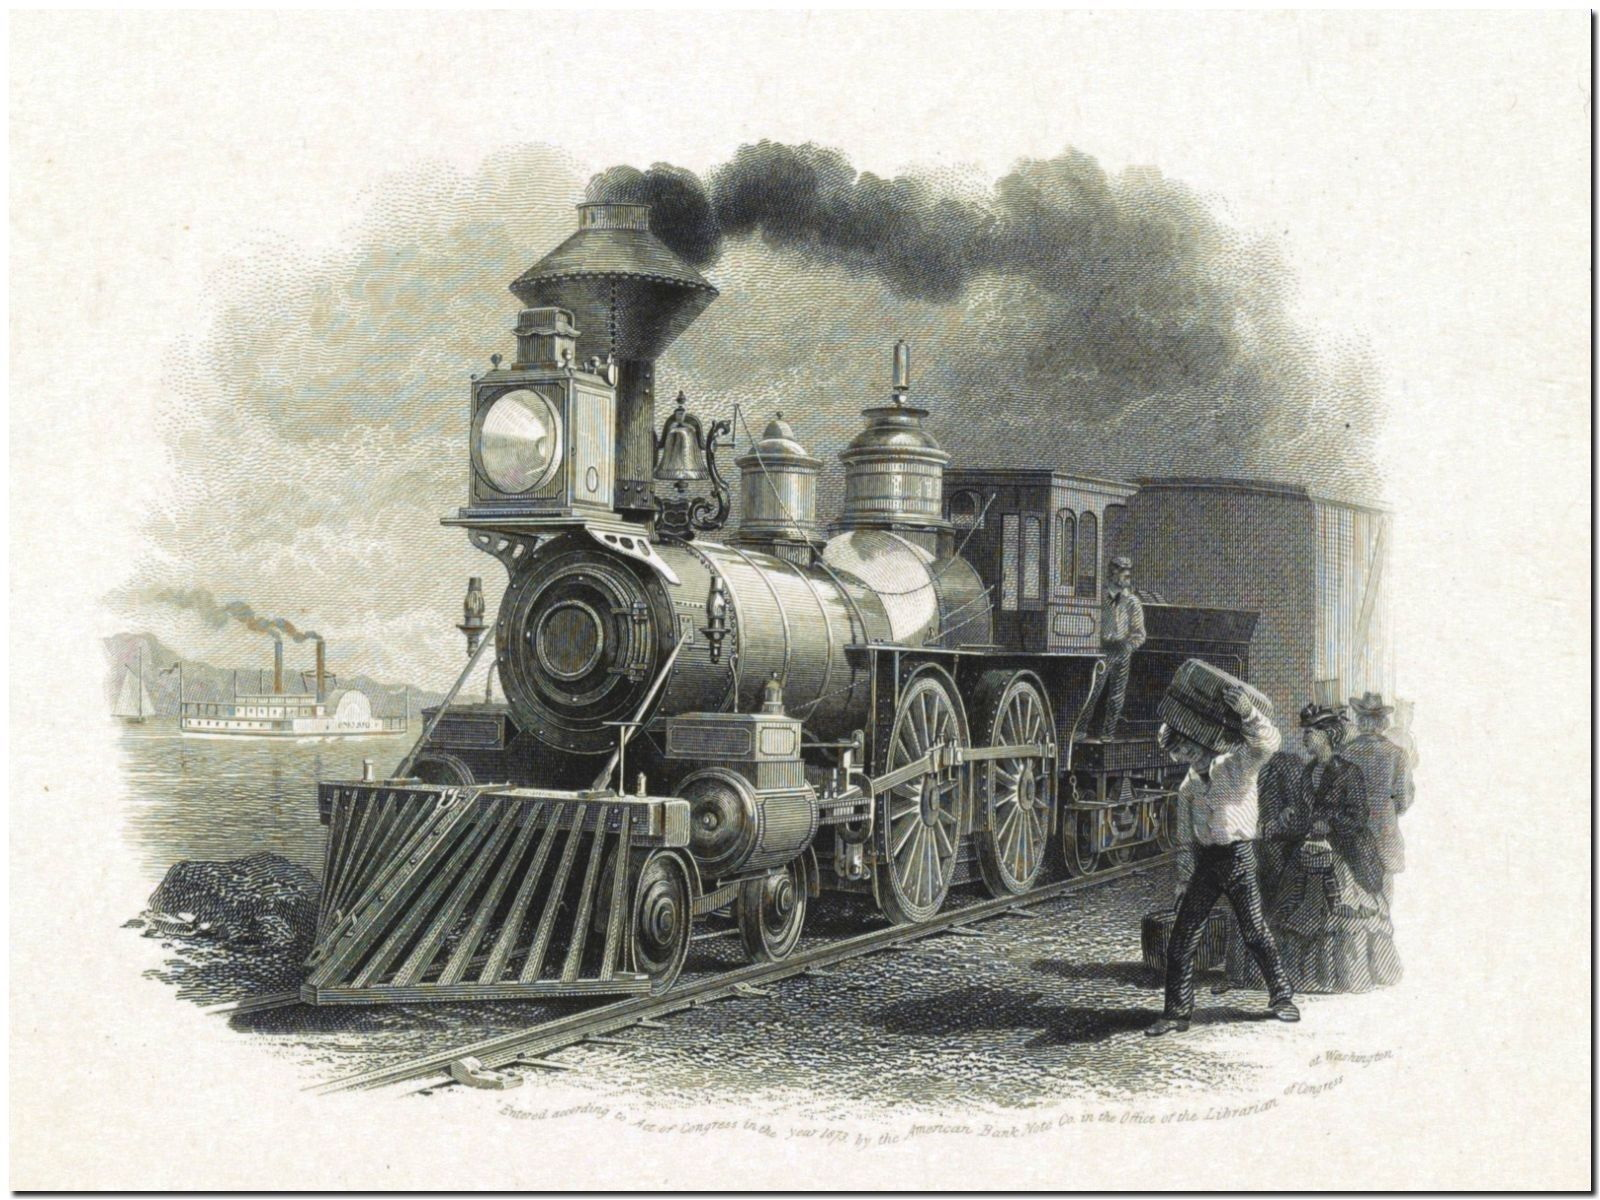 179014 VINTAGE STEAM TRAIN DECOR WALL PRINT POSTER CA